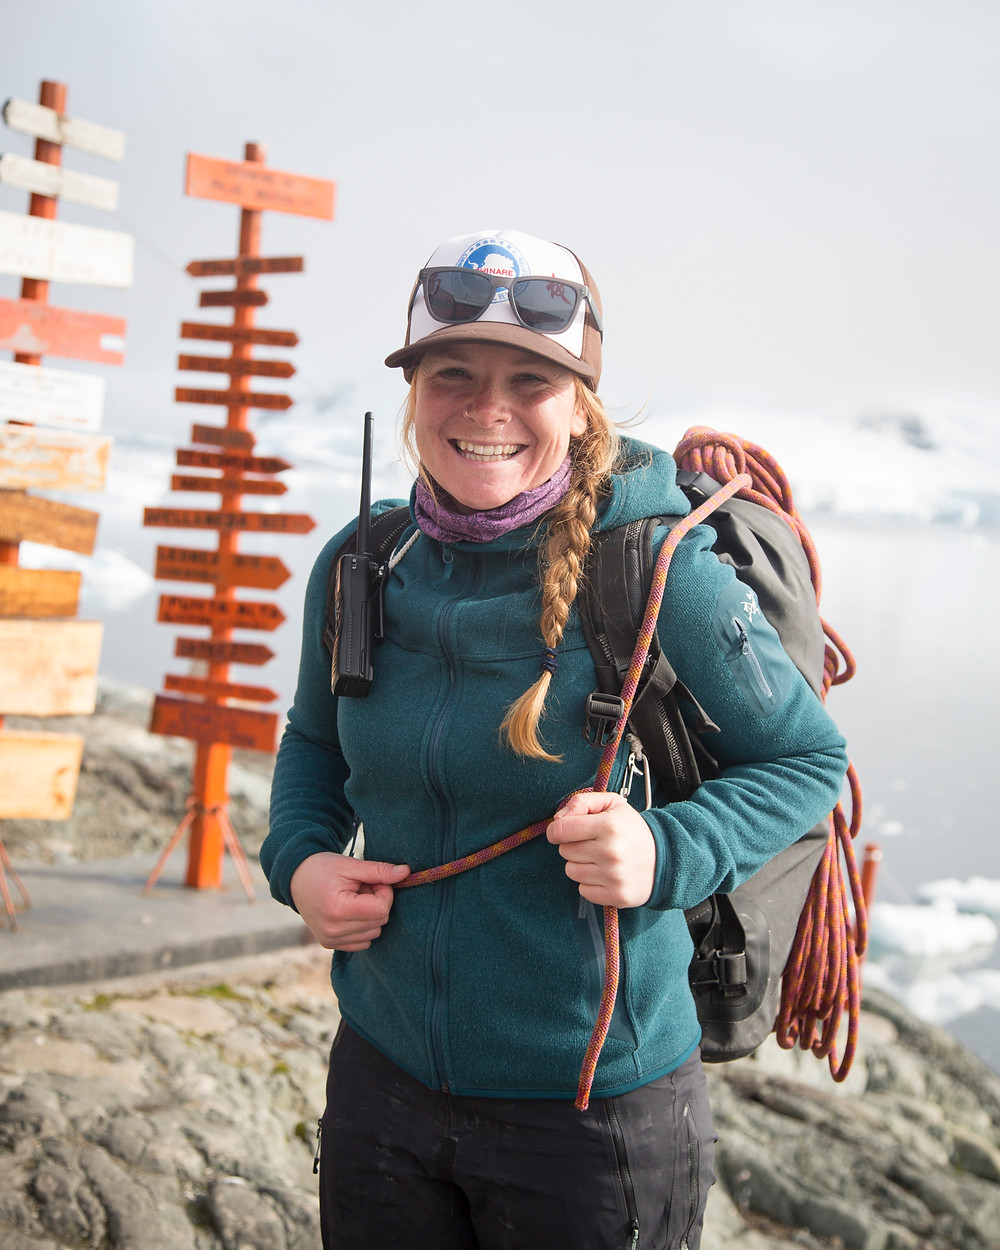 Niki Trudeau, expedition guide, Quark, quark expeditions, training and development, expedition guide, science base, antarctica, polar regions